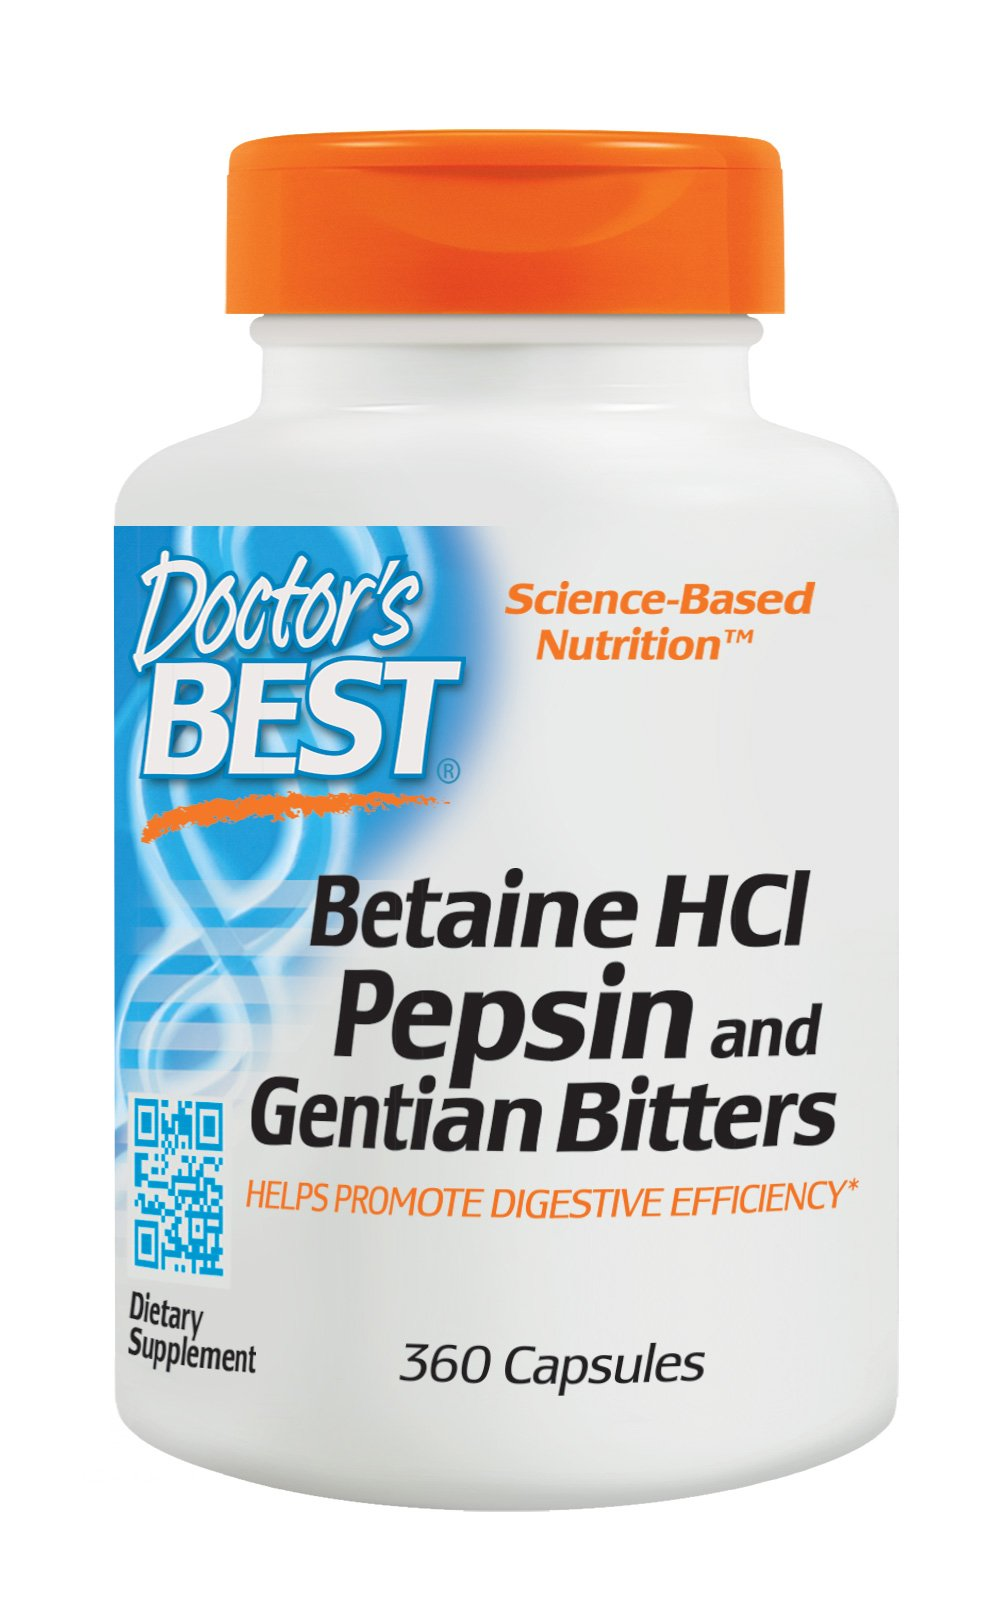 Doctor's Best Betaine HCI Pepsin and Gentian Bitters, Non-GMO, Gluten Free, Digestion Support, 360 Caps